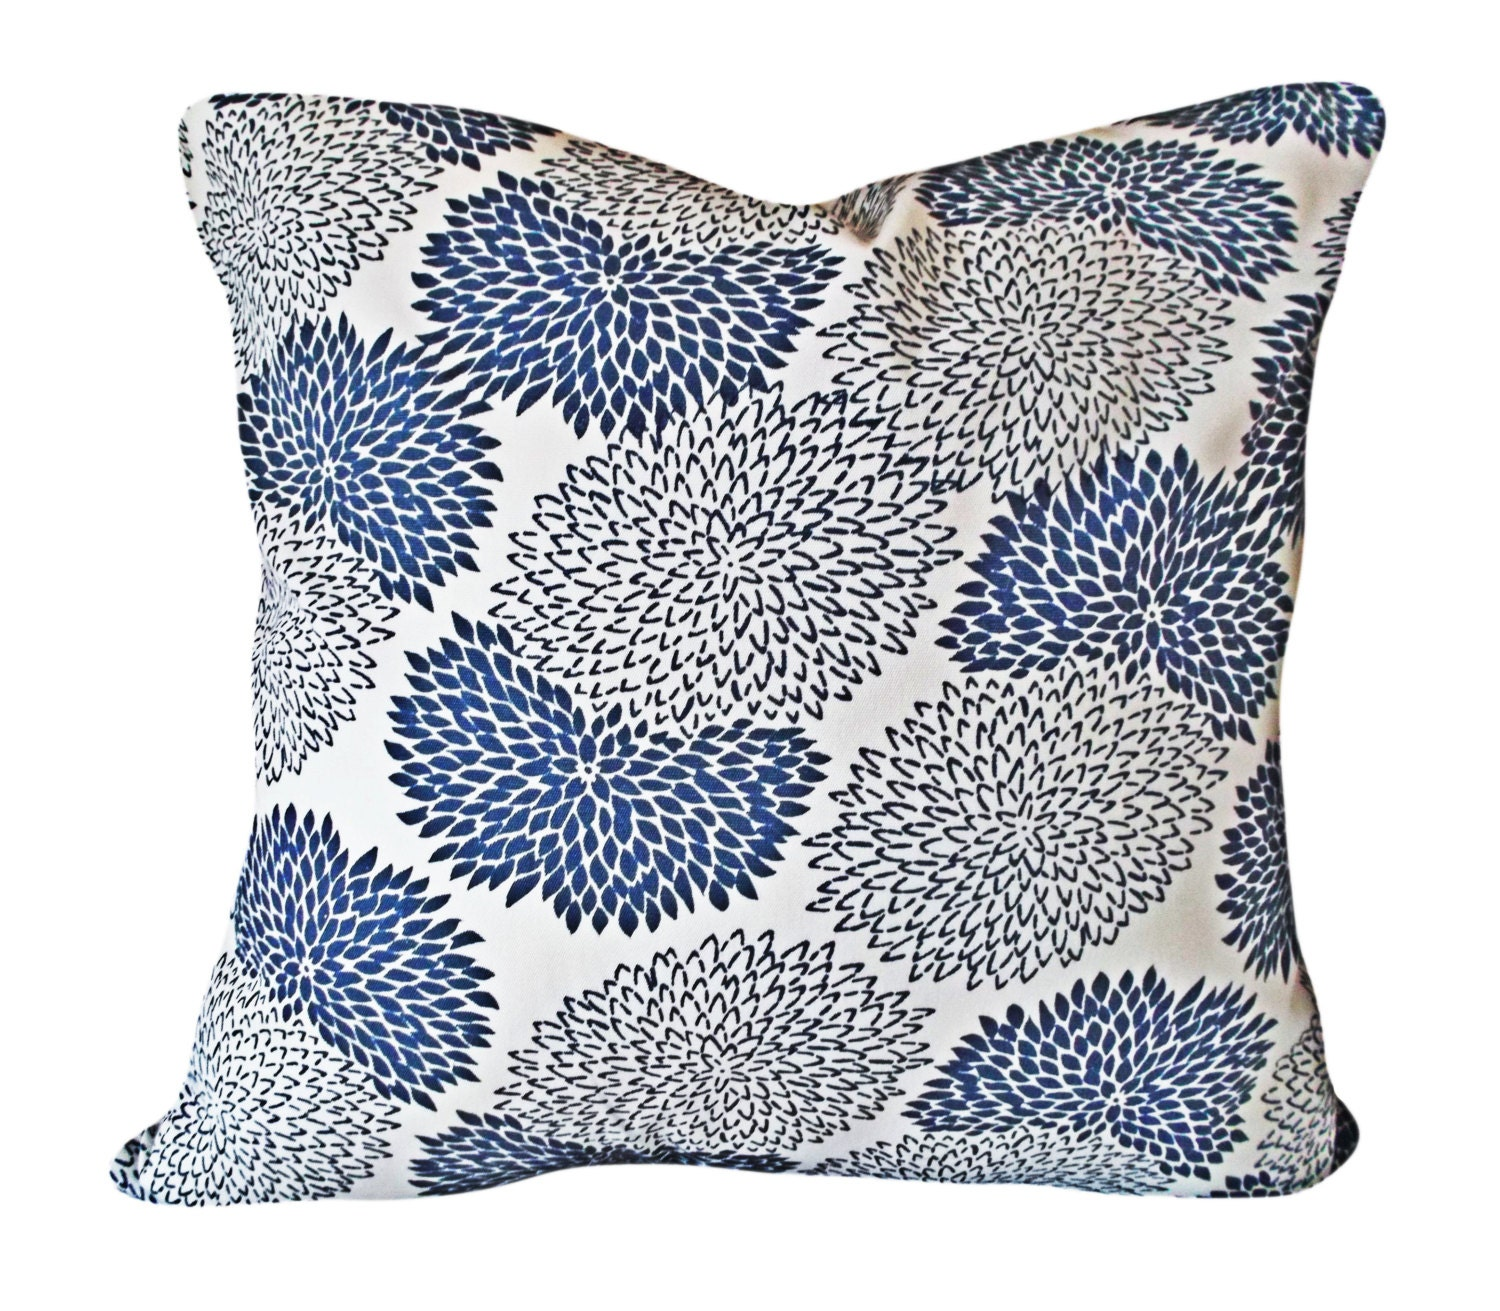 Queen Throw Pillows : China Seas Chrysanthemum Throw Pillow Cover Quadrille